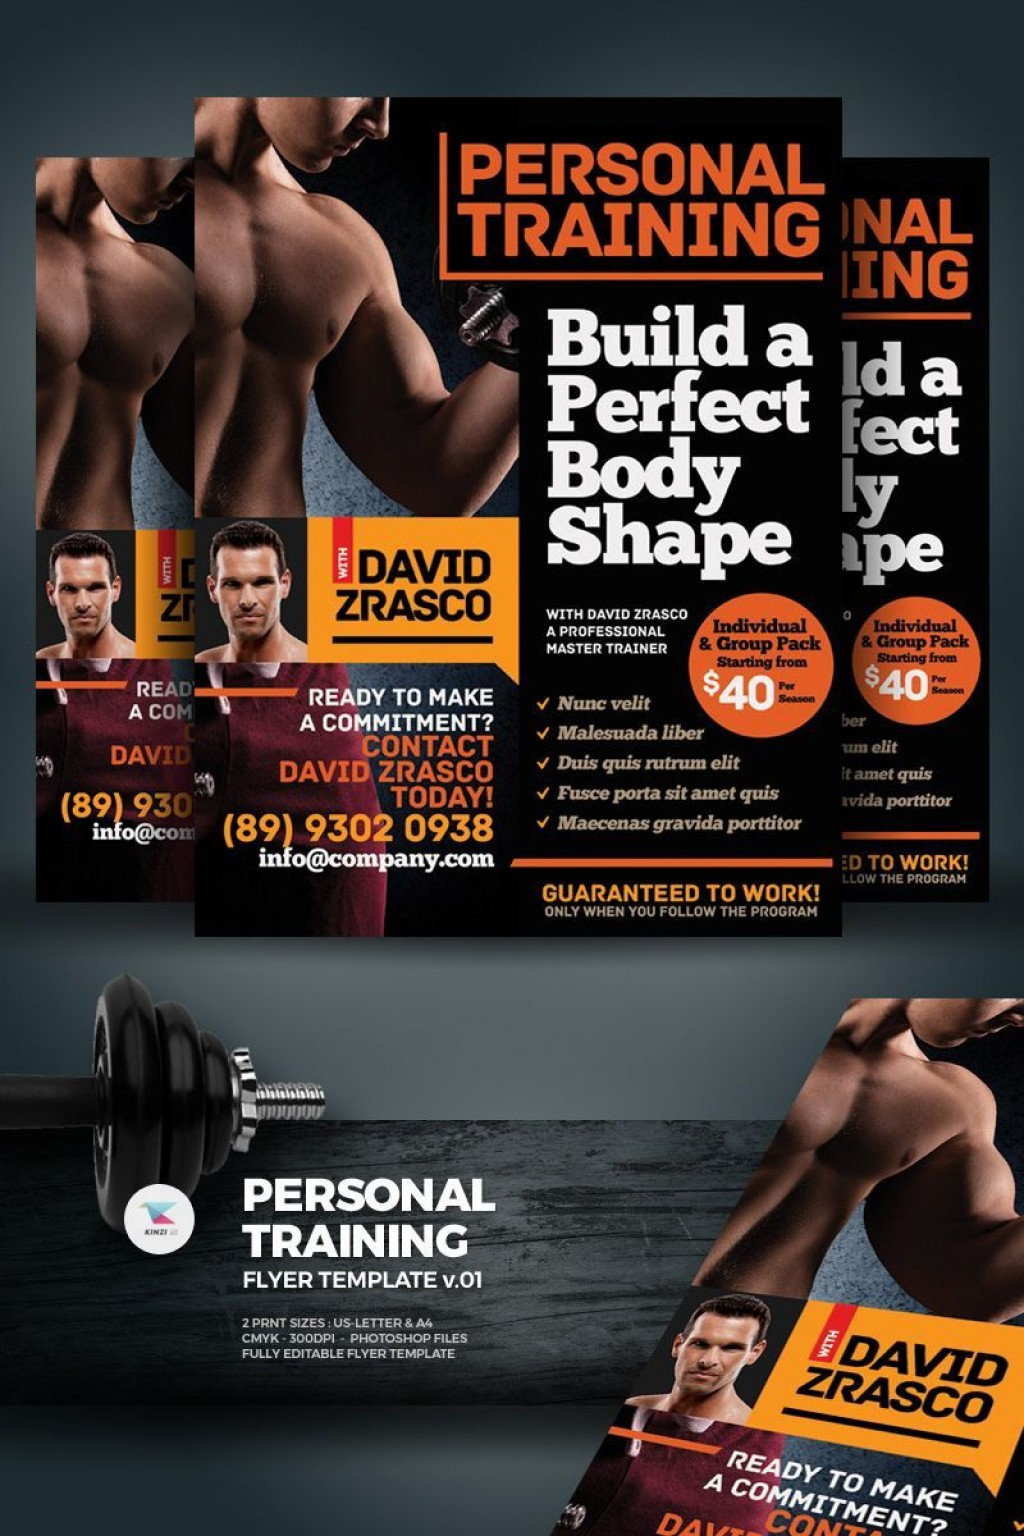 002 Best Personal Trainer Flyer Template Sample  Word PsdLarge